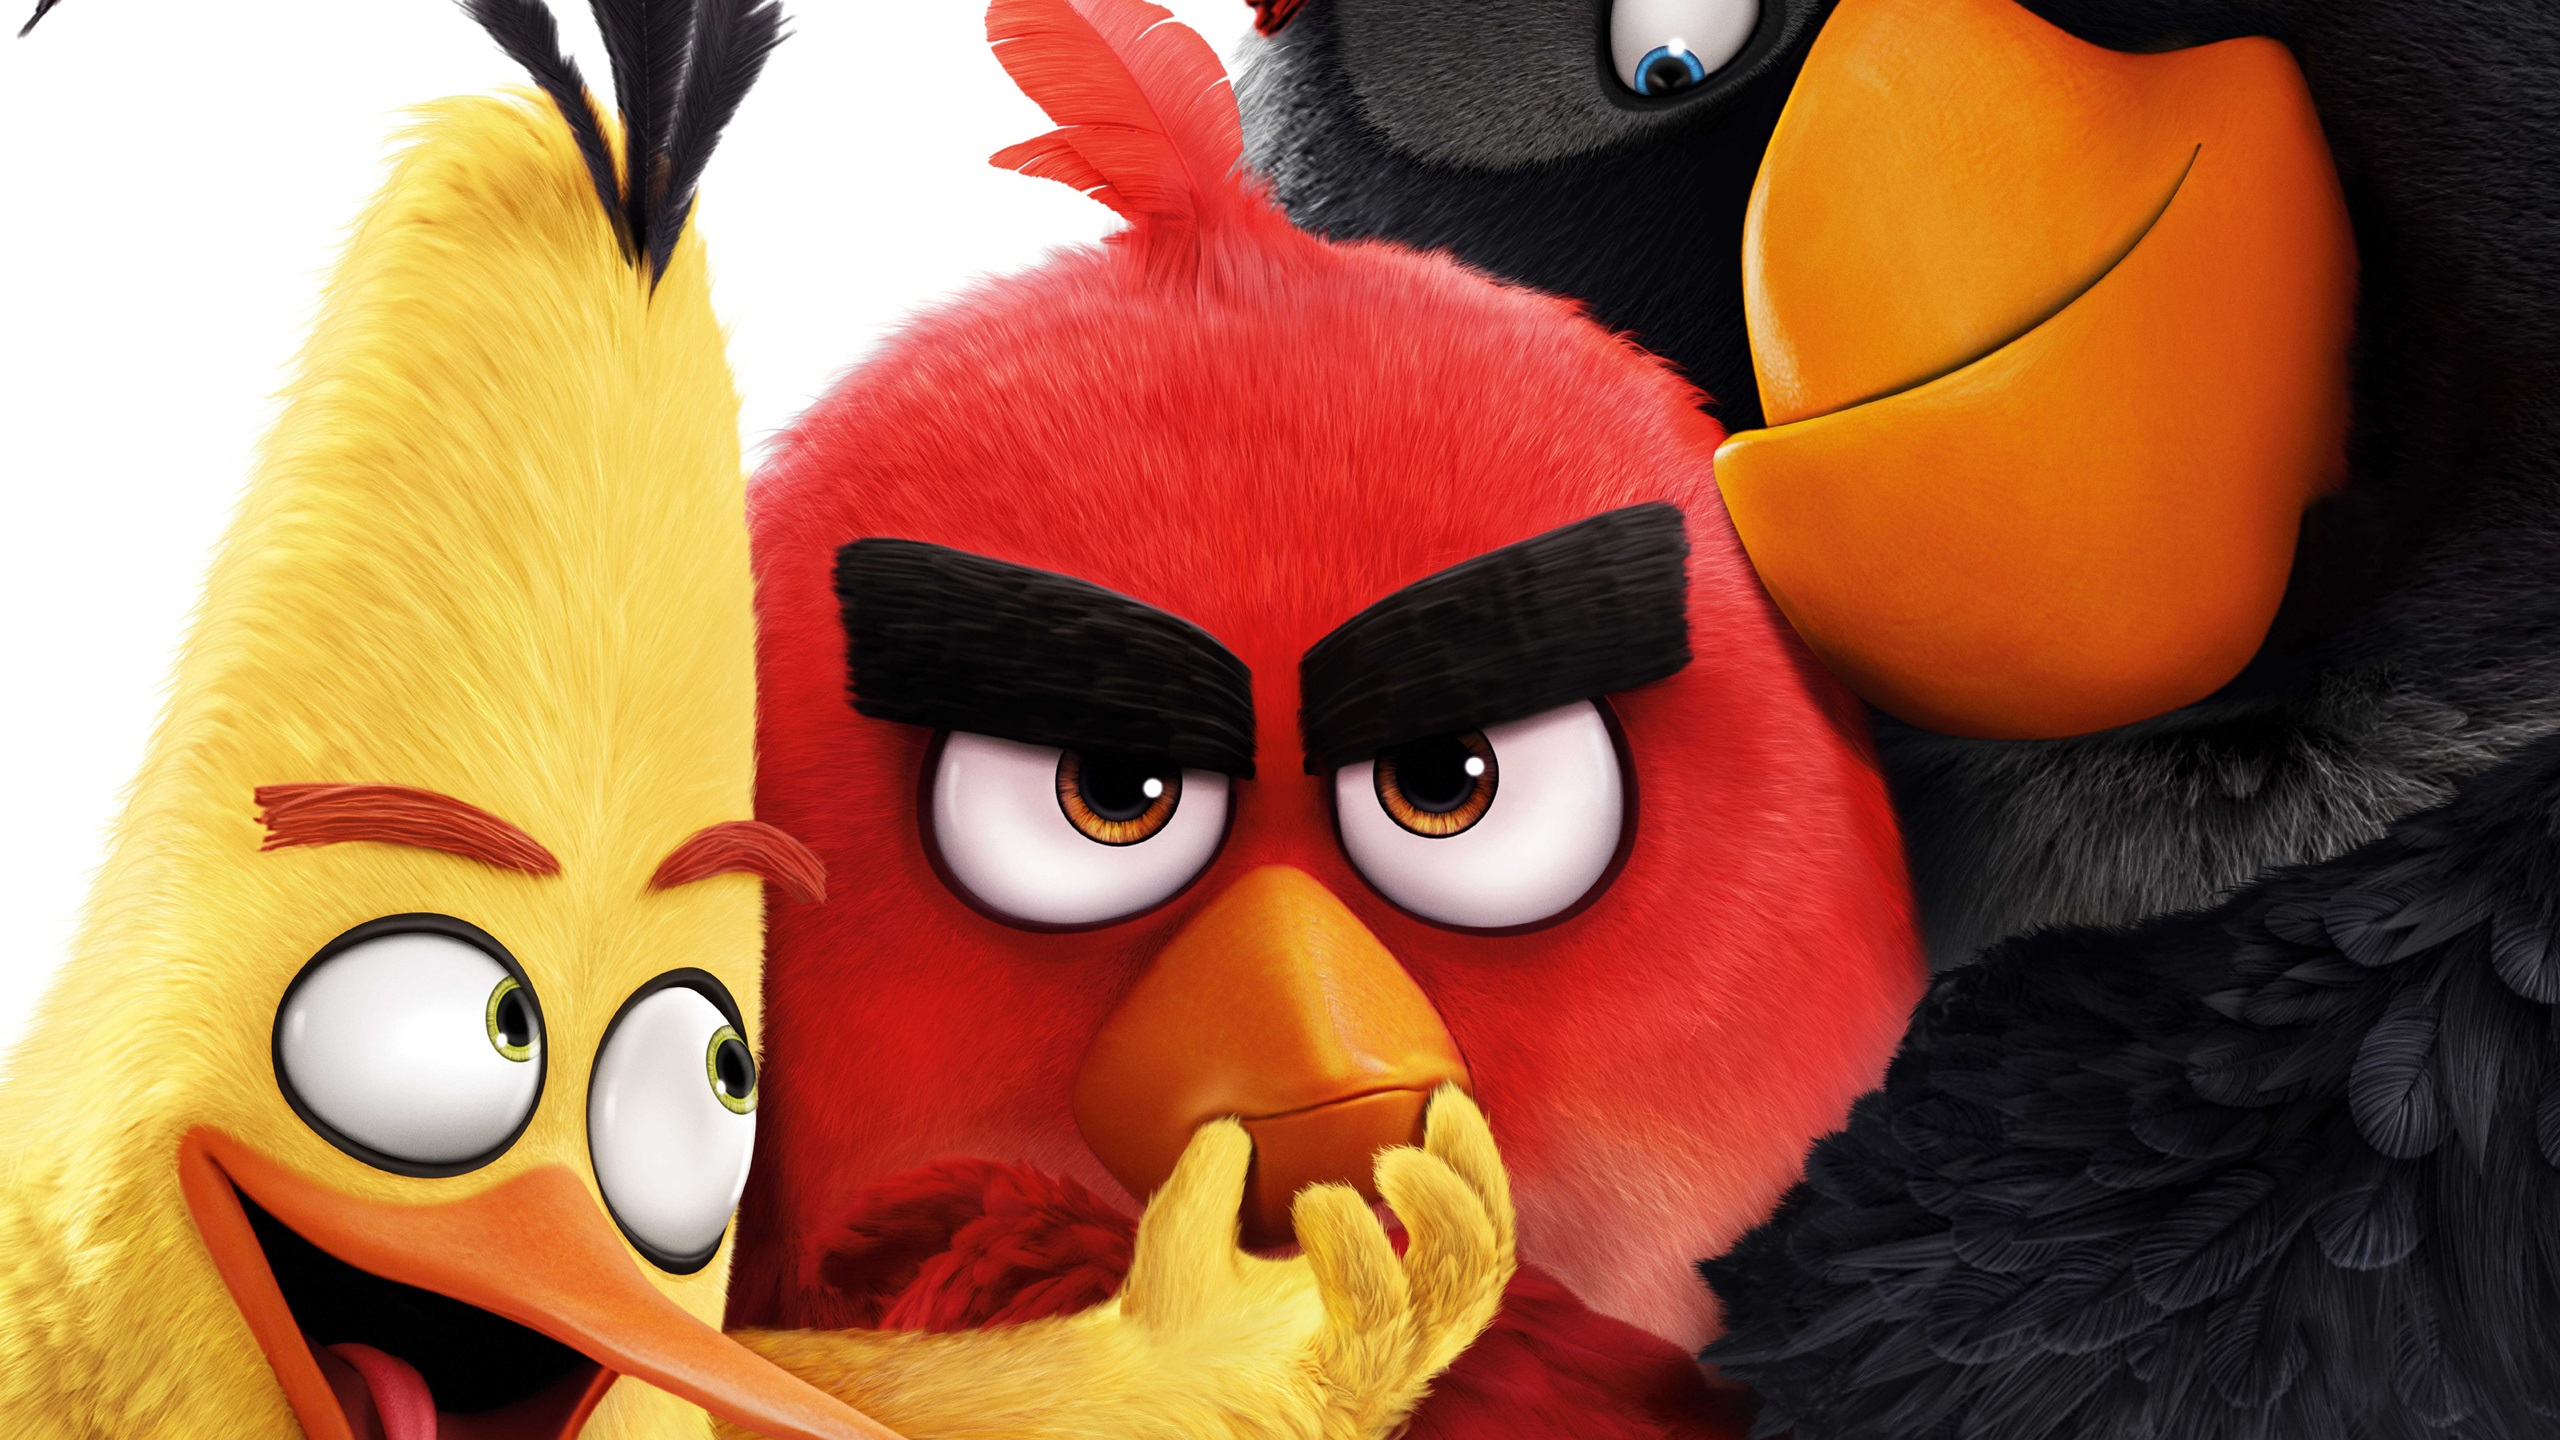 Wallpaper Angry Birds 2016 Movie 2560x1920 Hd Picture Image